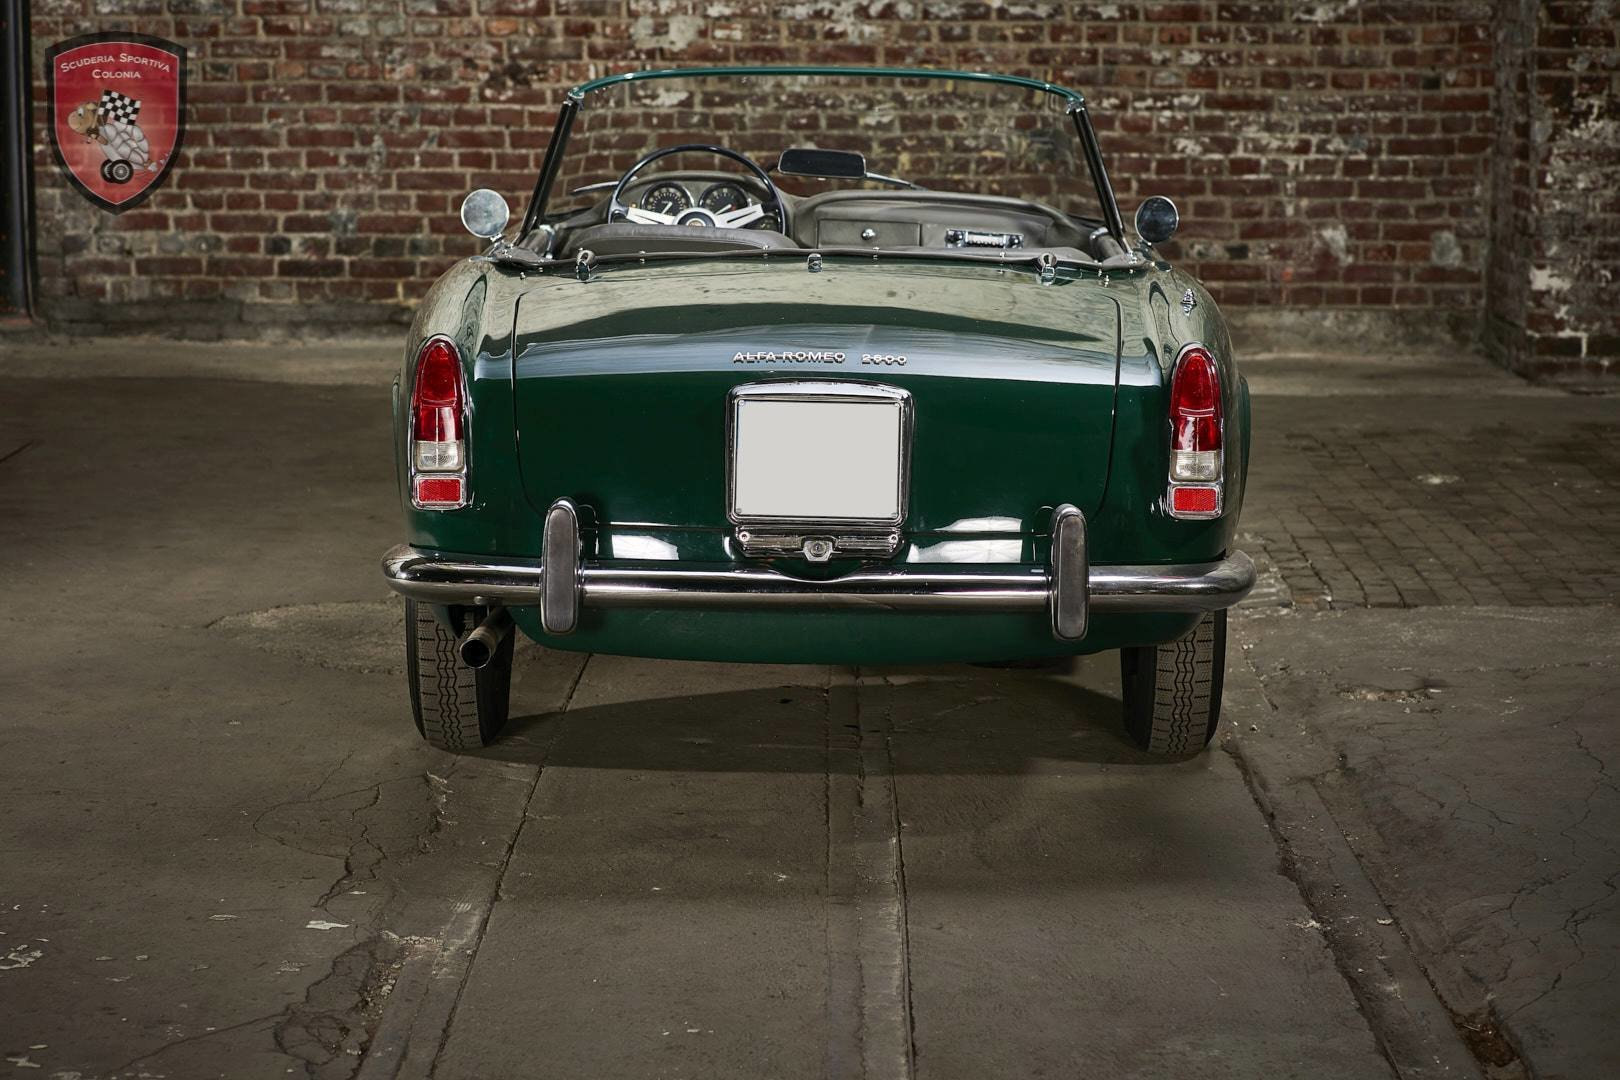 1965 Alfa Romeo 2600 spider Touring For Sale (picture 8 of 12)